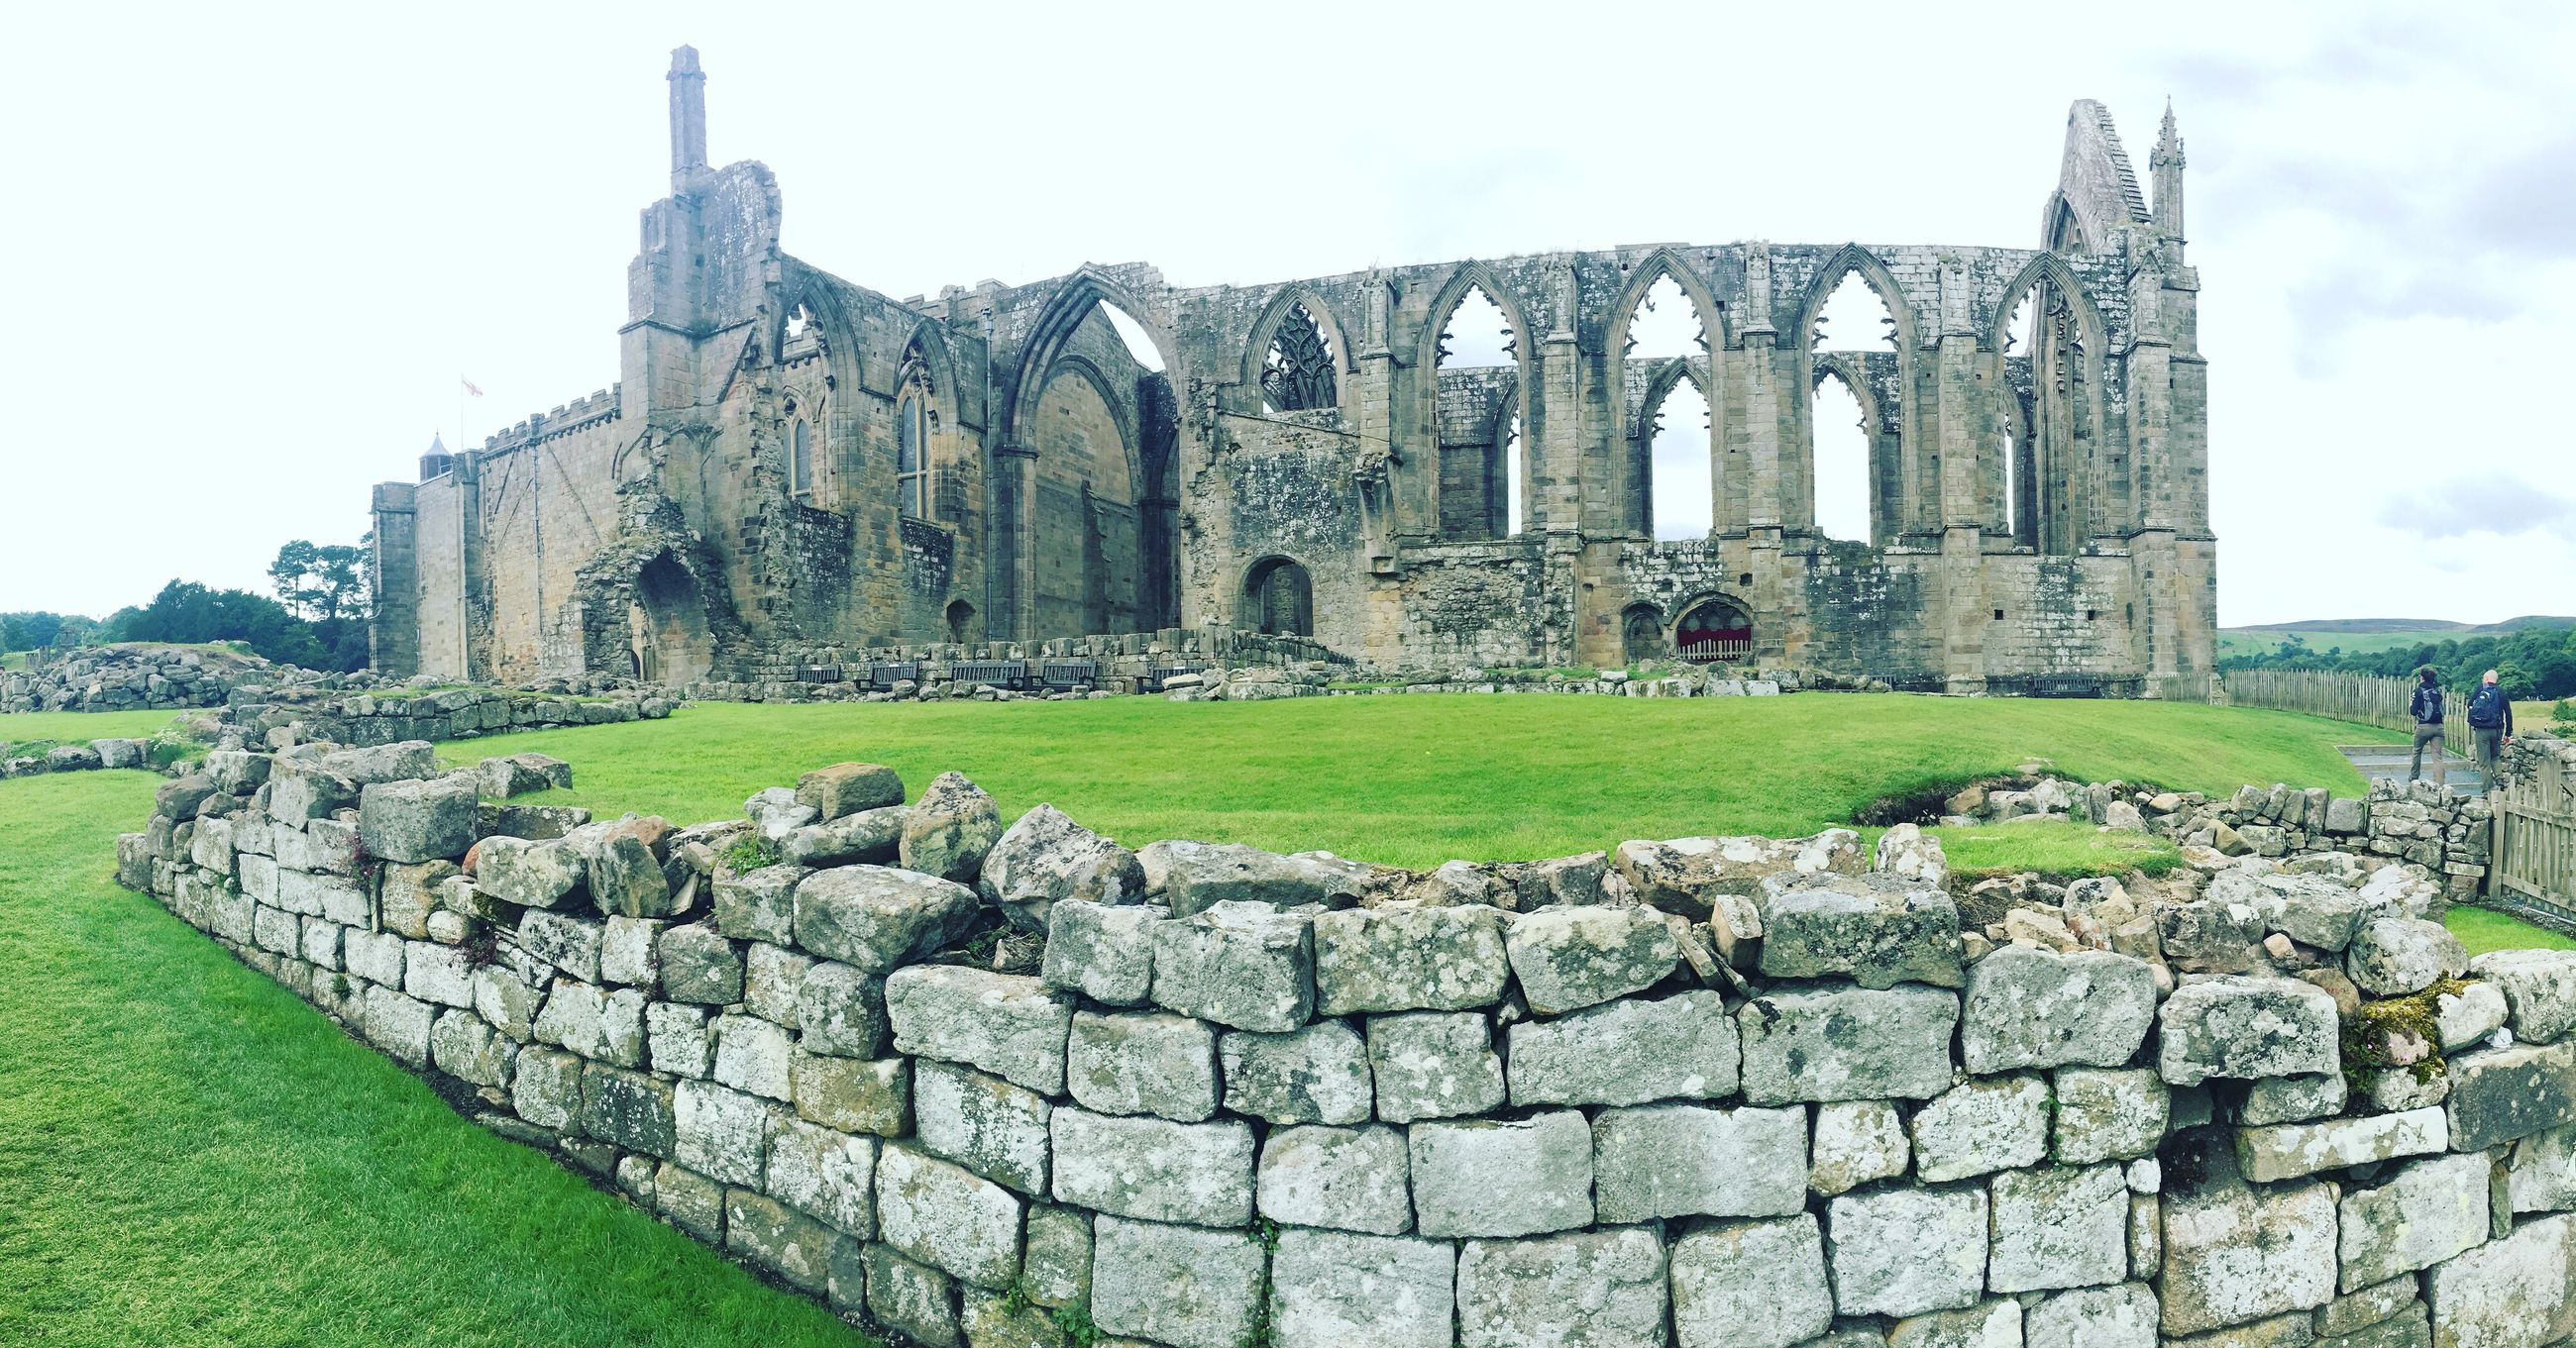 history, old ruin, built structure, architecture, ancient, the past, ancient civilization, grass, building exterior, day, tourism, damaged, travel destinations, outdoors, castle, sky, green color, place of worship, no people, canon